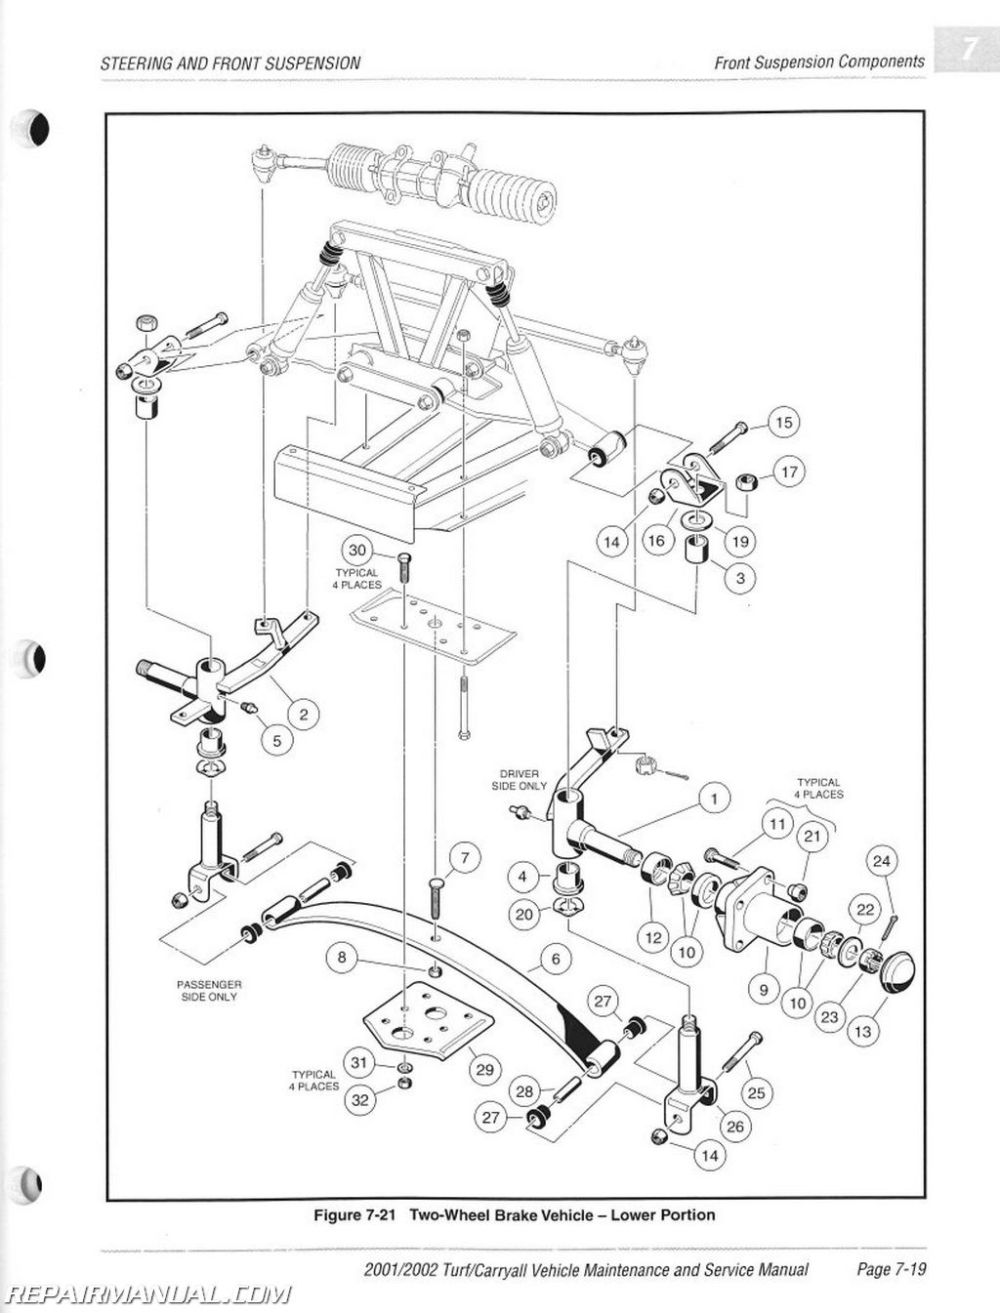 medium resolution of club car carryall 1 wiring diagram wiring diagram 2001 2002 club car turf 1 2 6